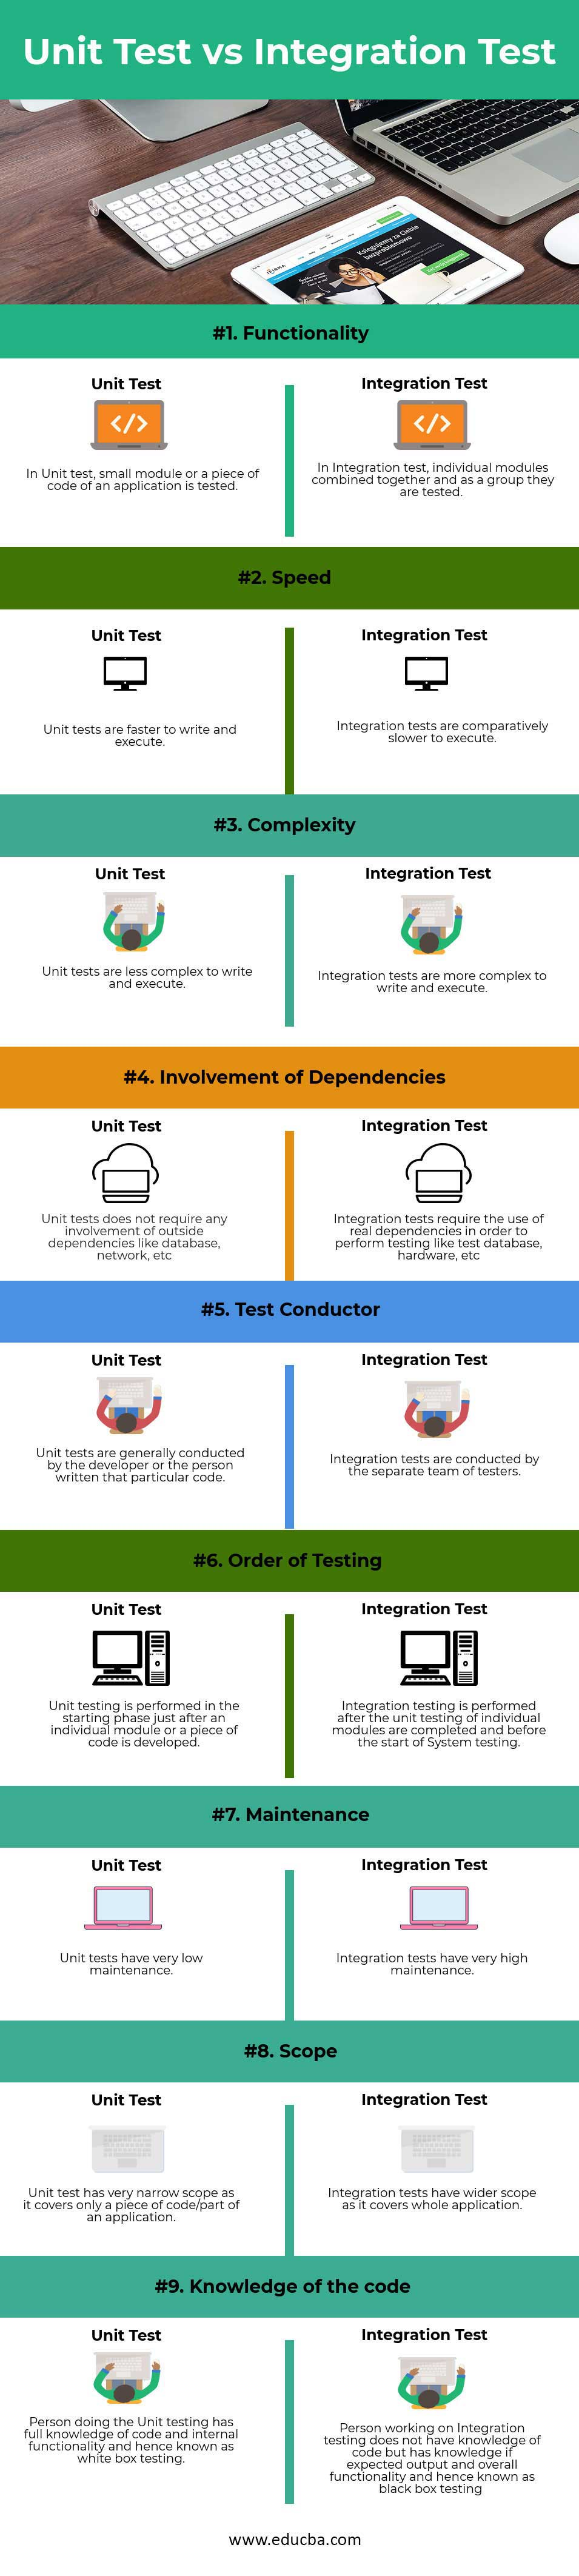 Unit-Test-vs-Integration-Test-info